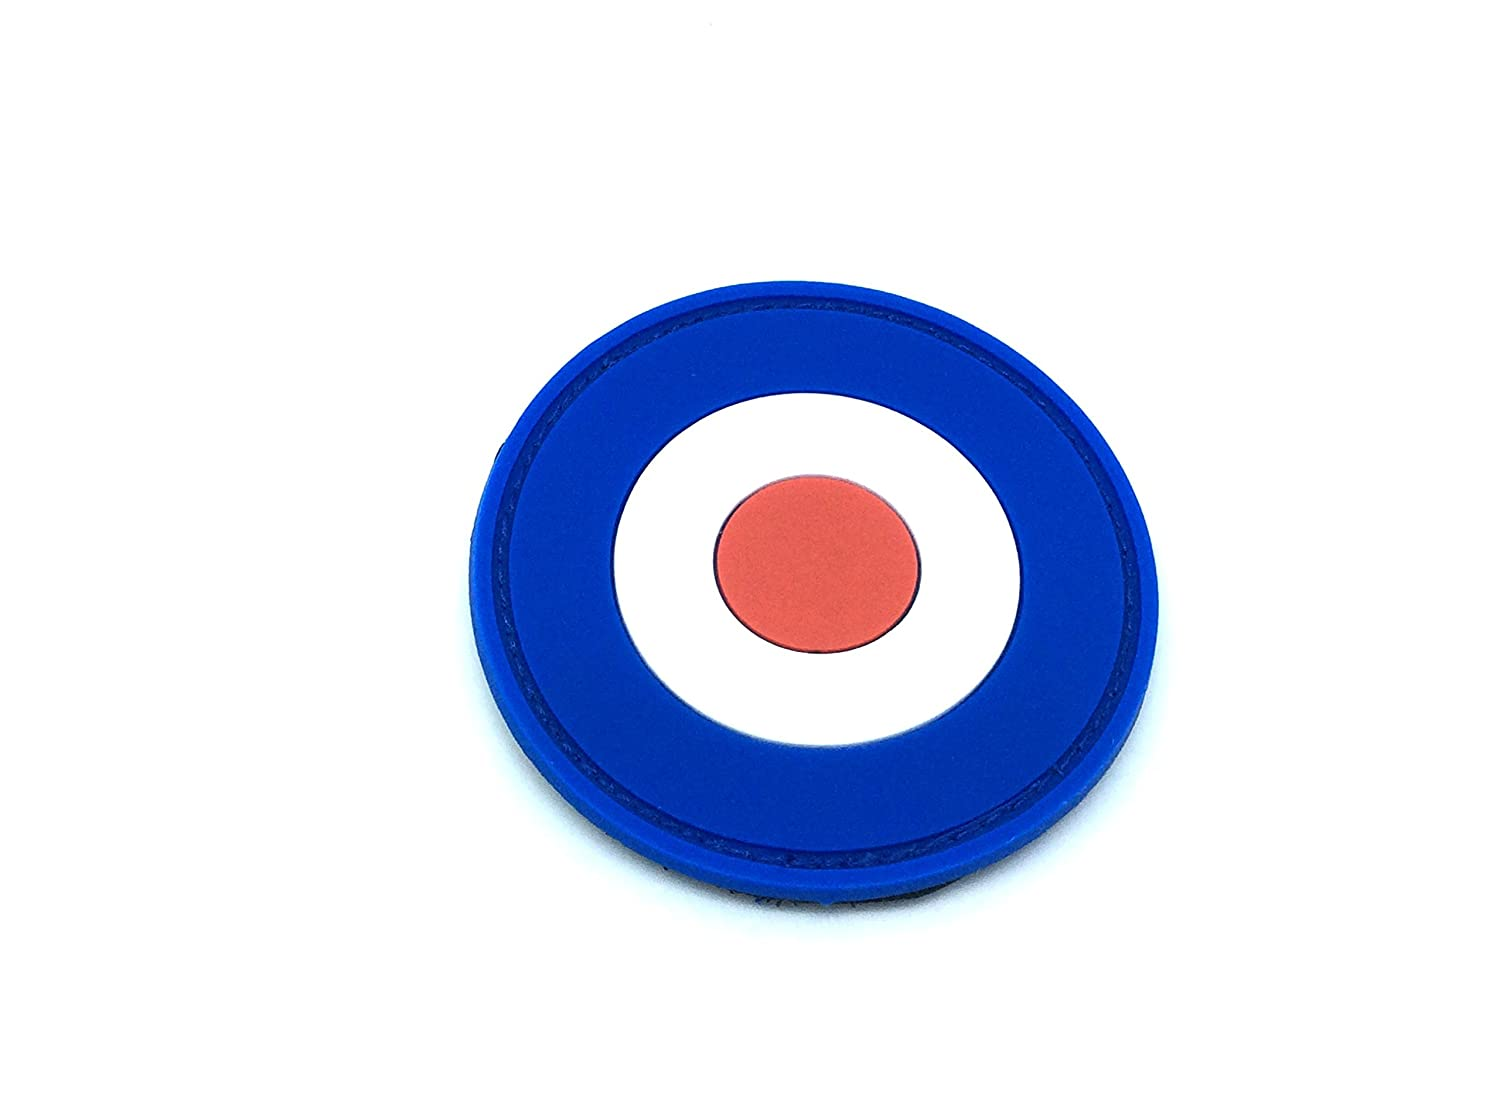 RAF Mod Lambretta Roundel Target Airsoft PVC Toppa Patch Patch Nation